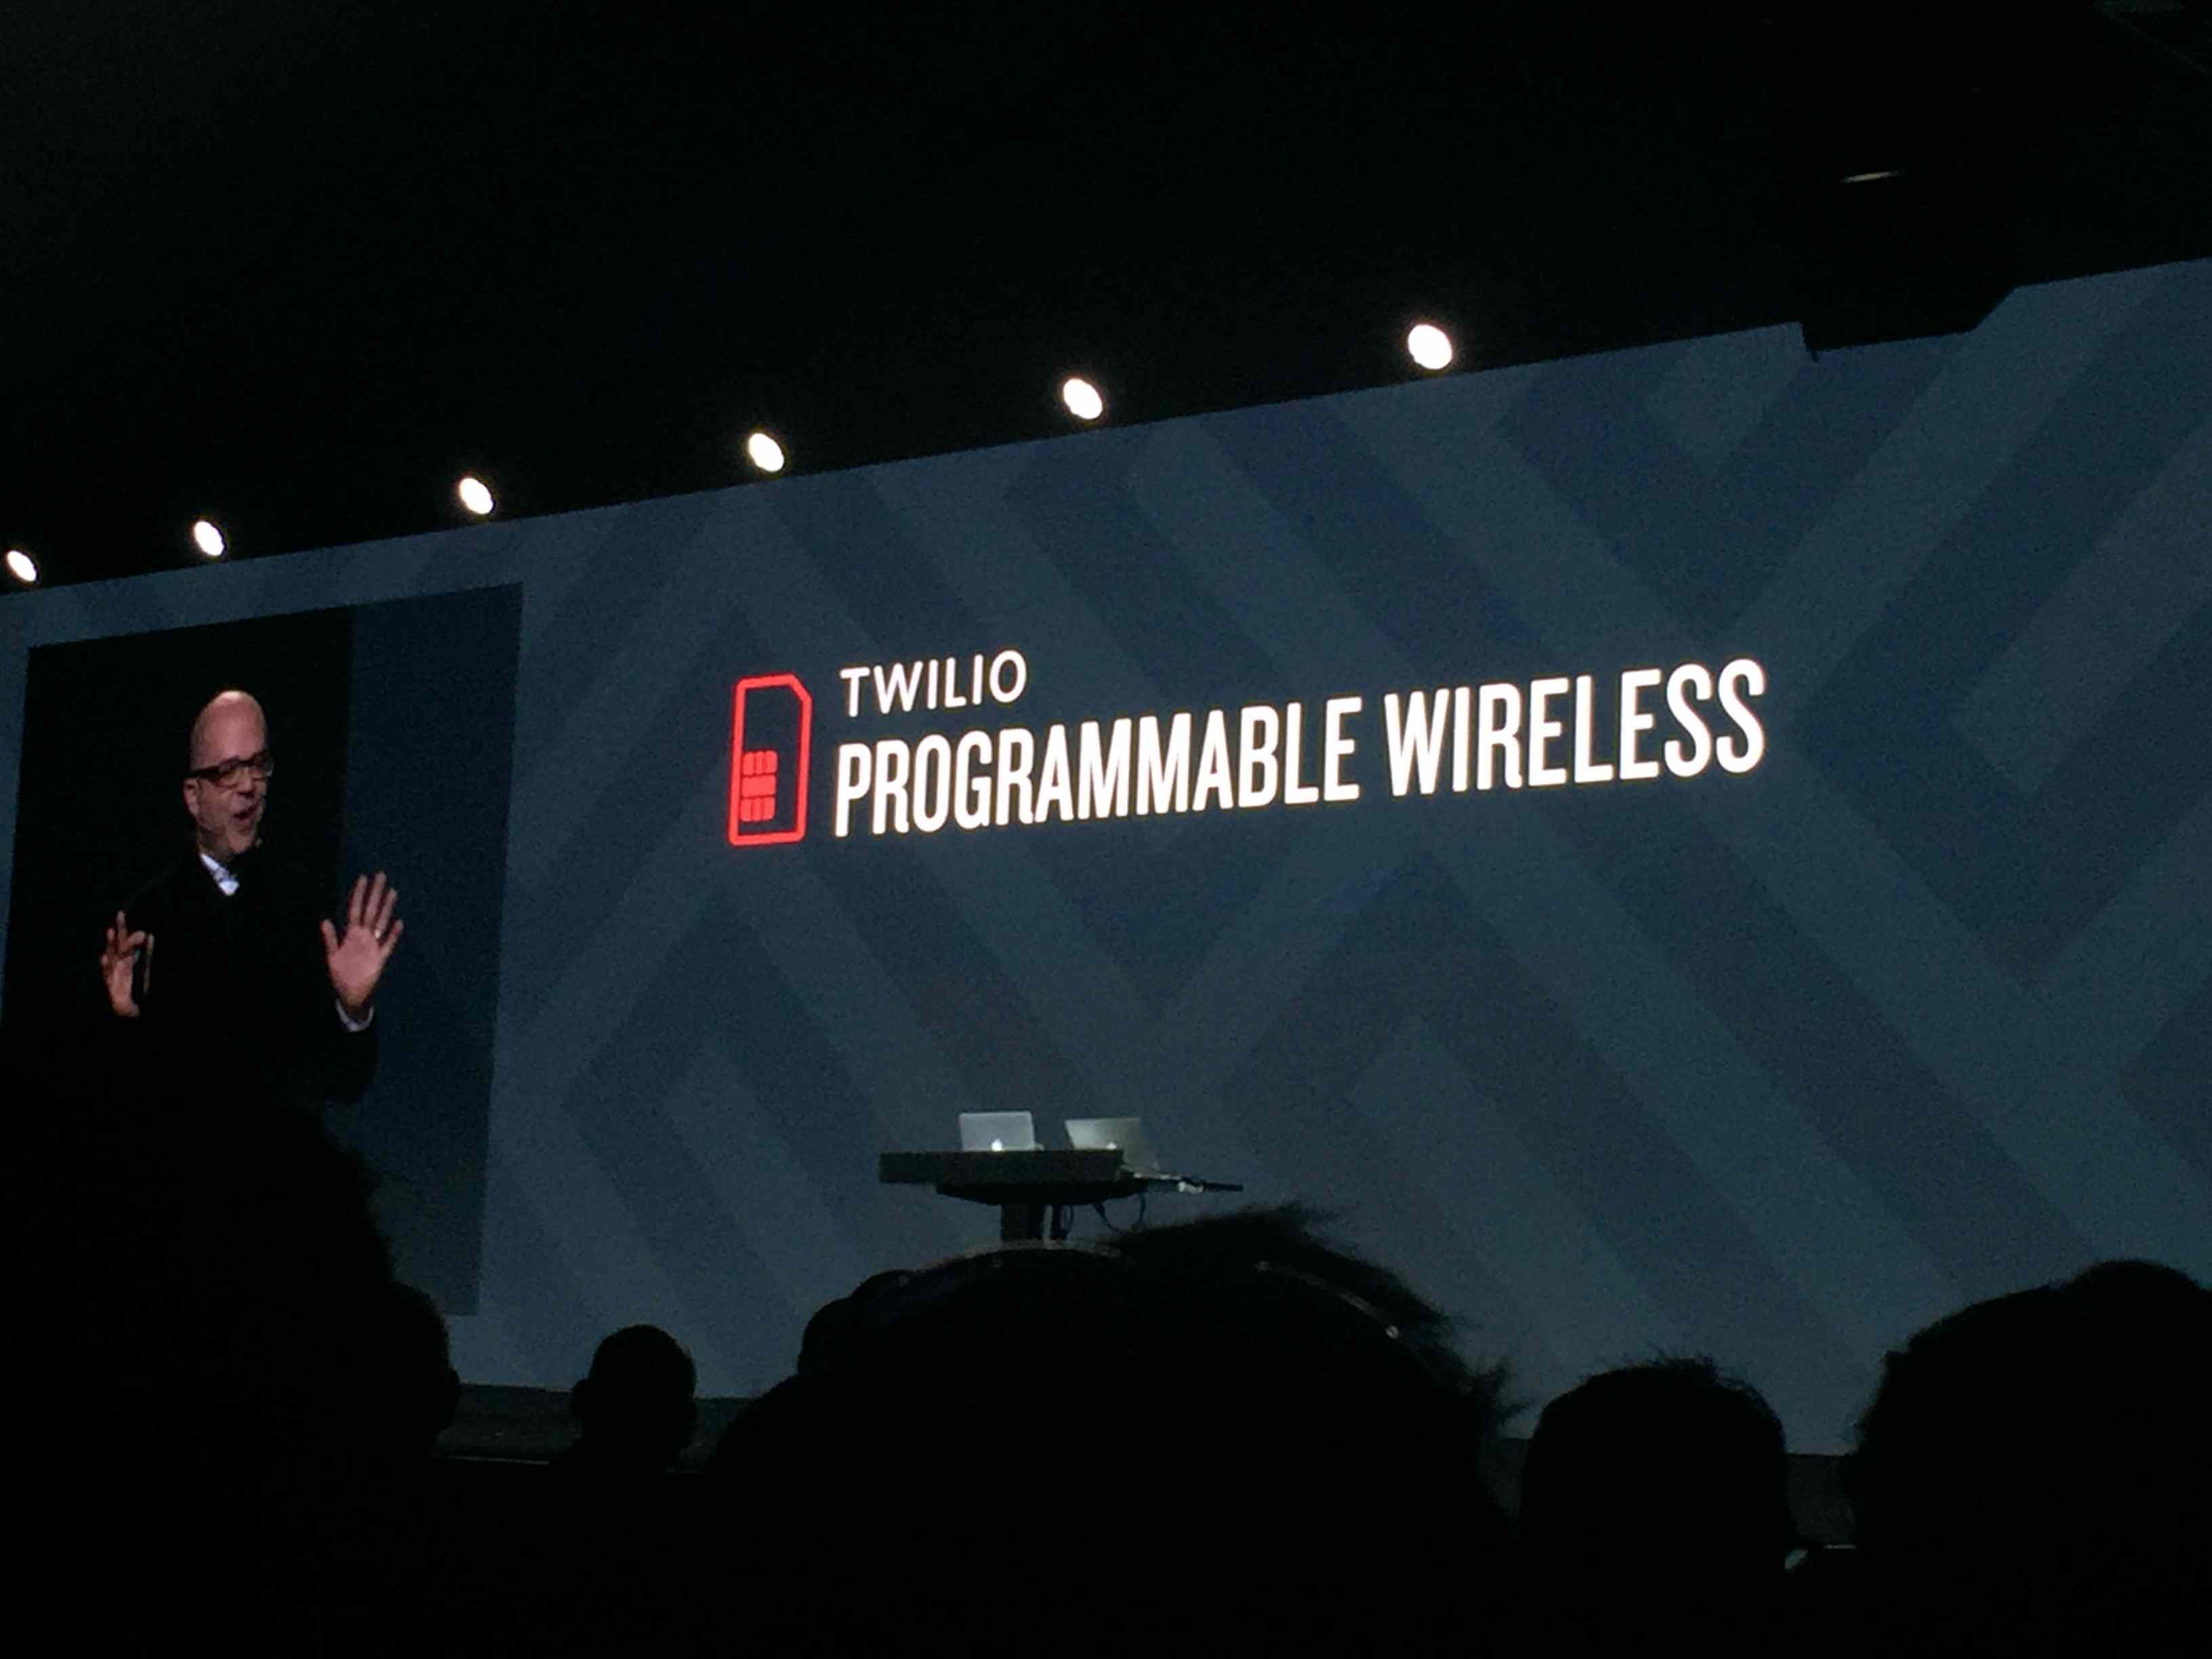 Twilio Signal 2016: Programmable Wireless